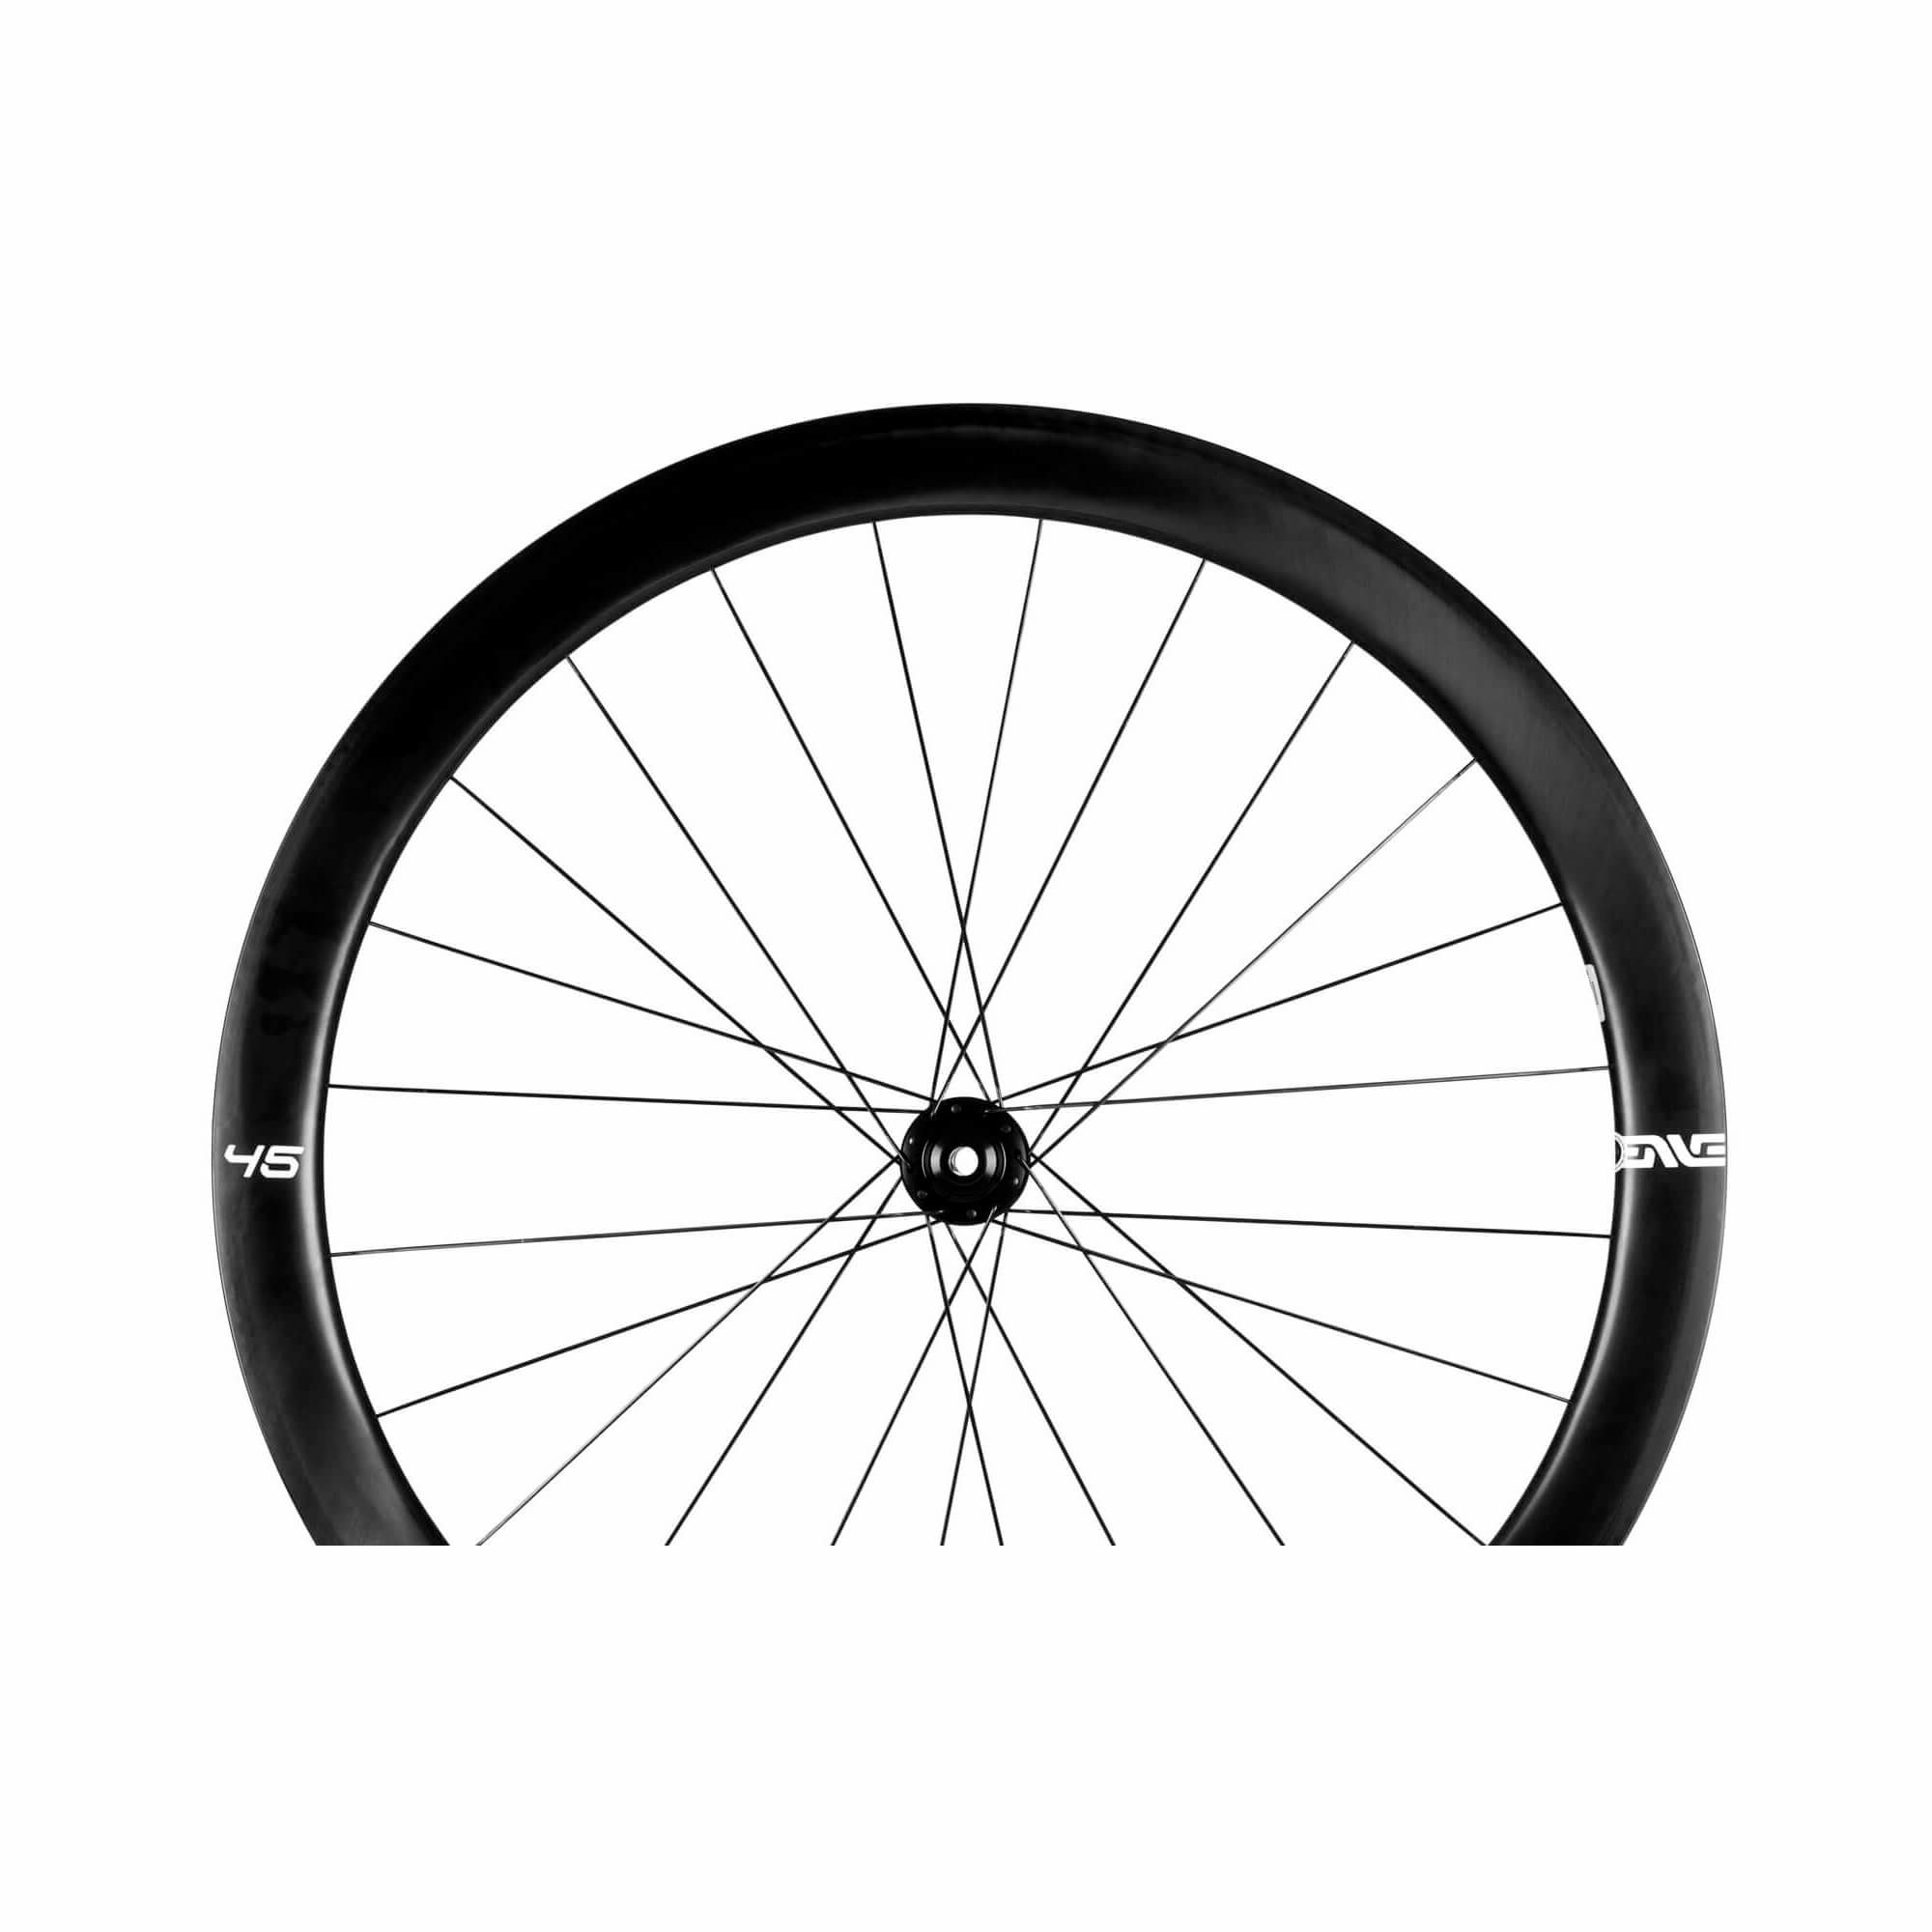 Wheelset Disc Foundation 12/142 XDR CL-3